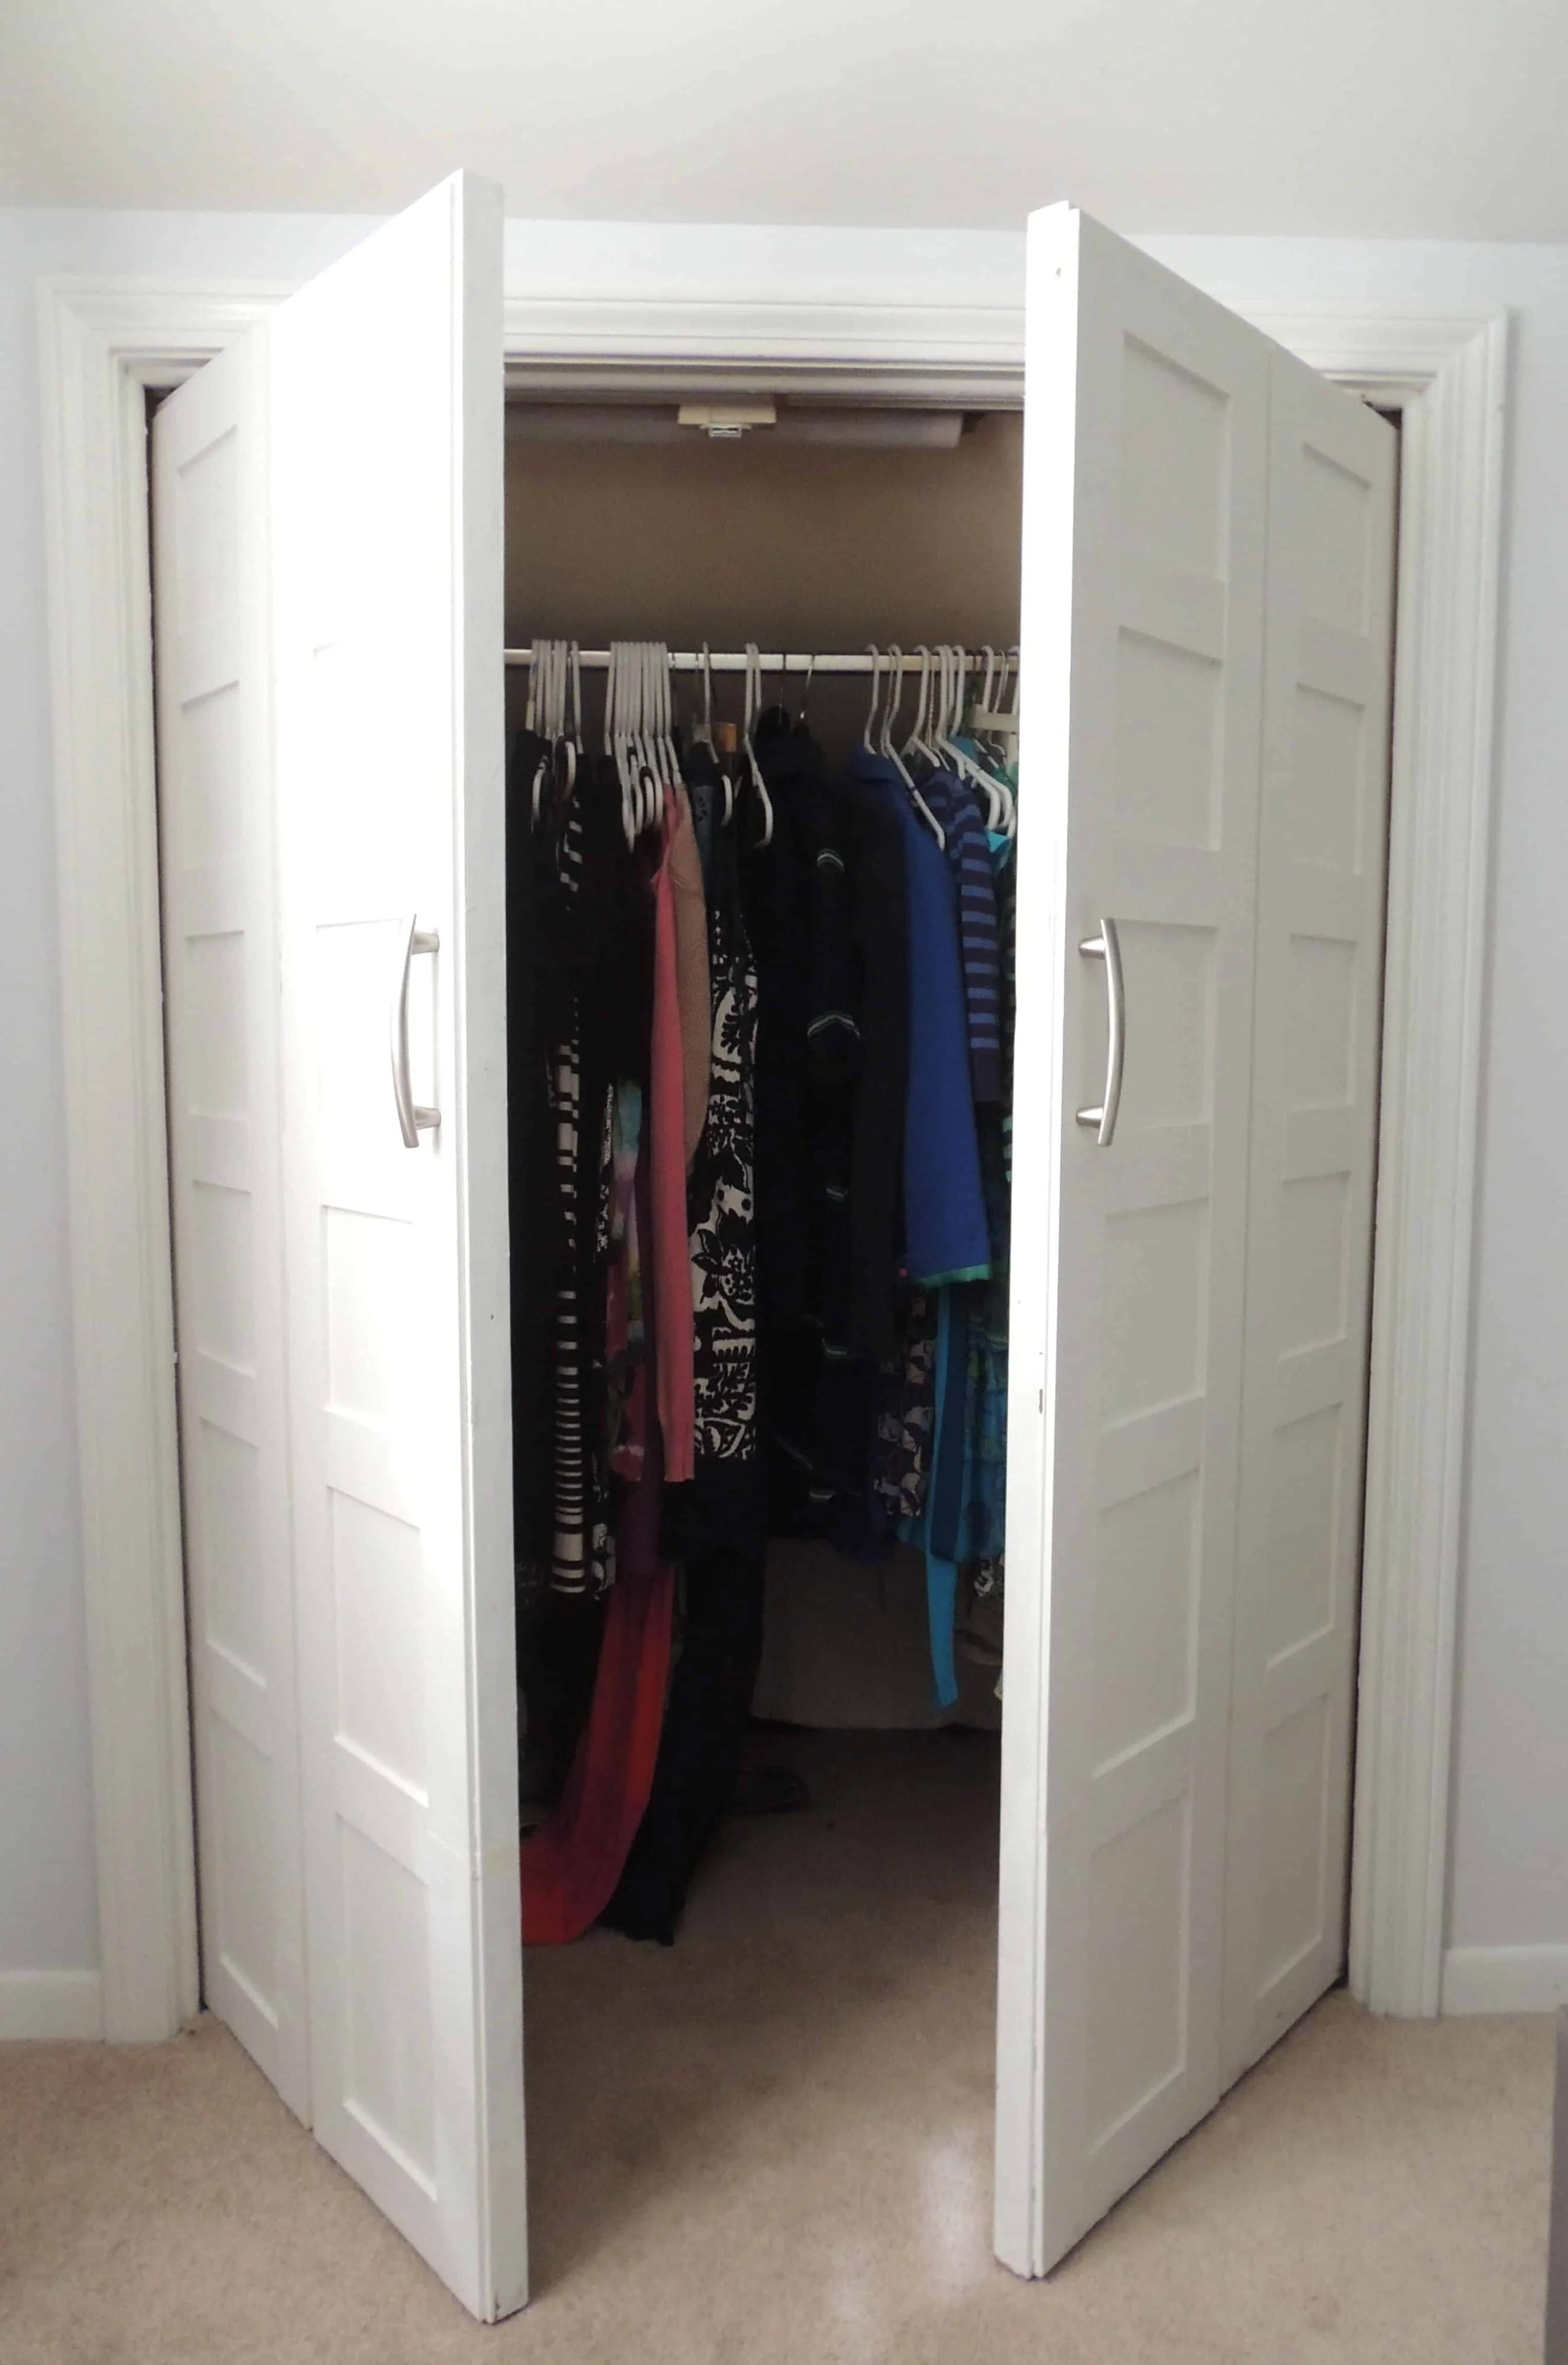 White bifold closet doors, slightly opened, now swinging out instead of folding